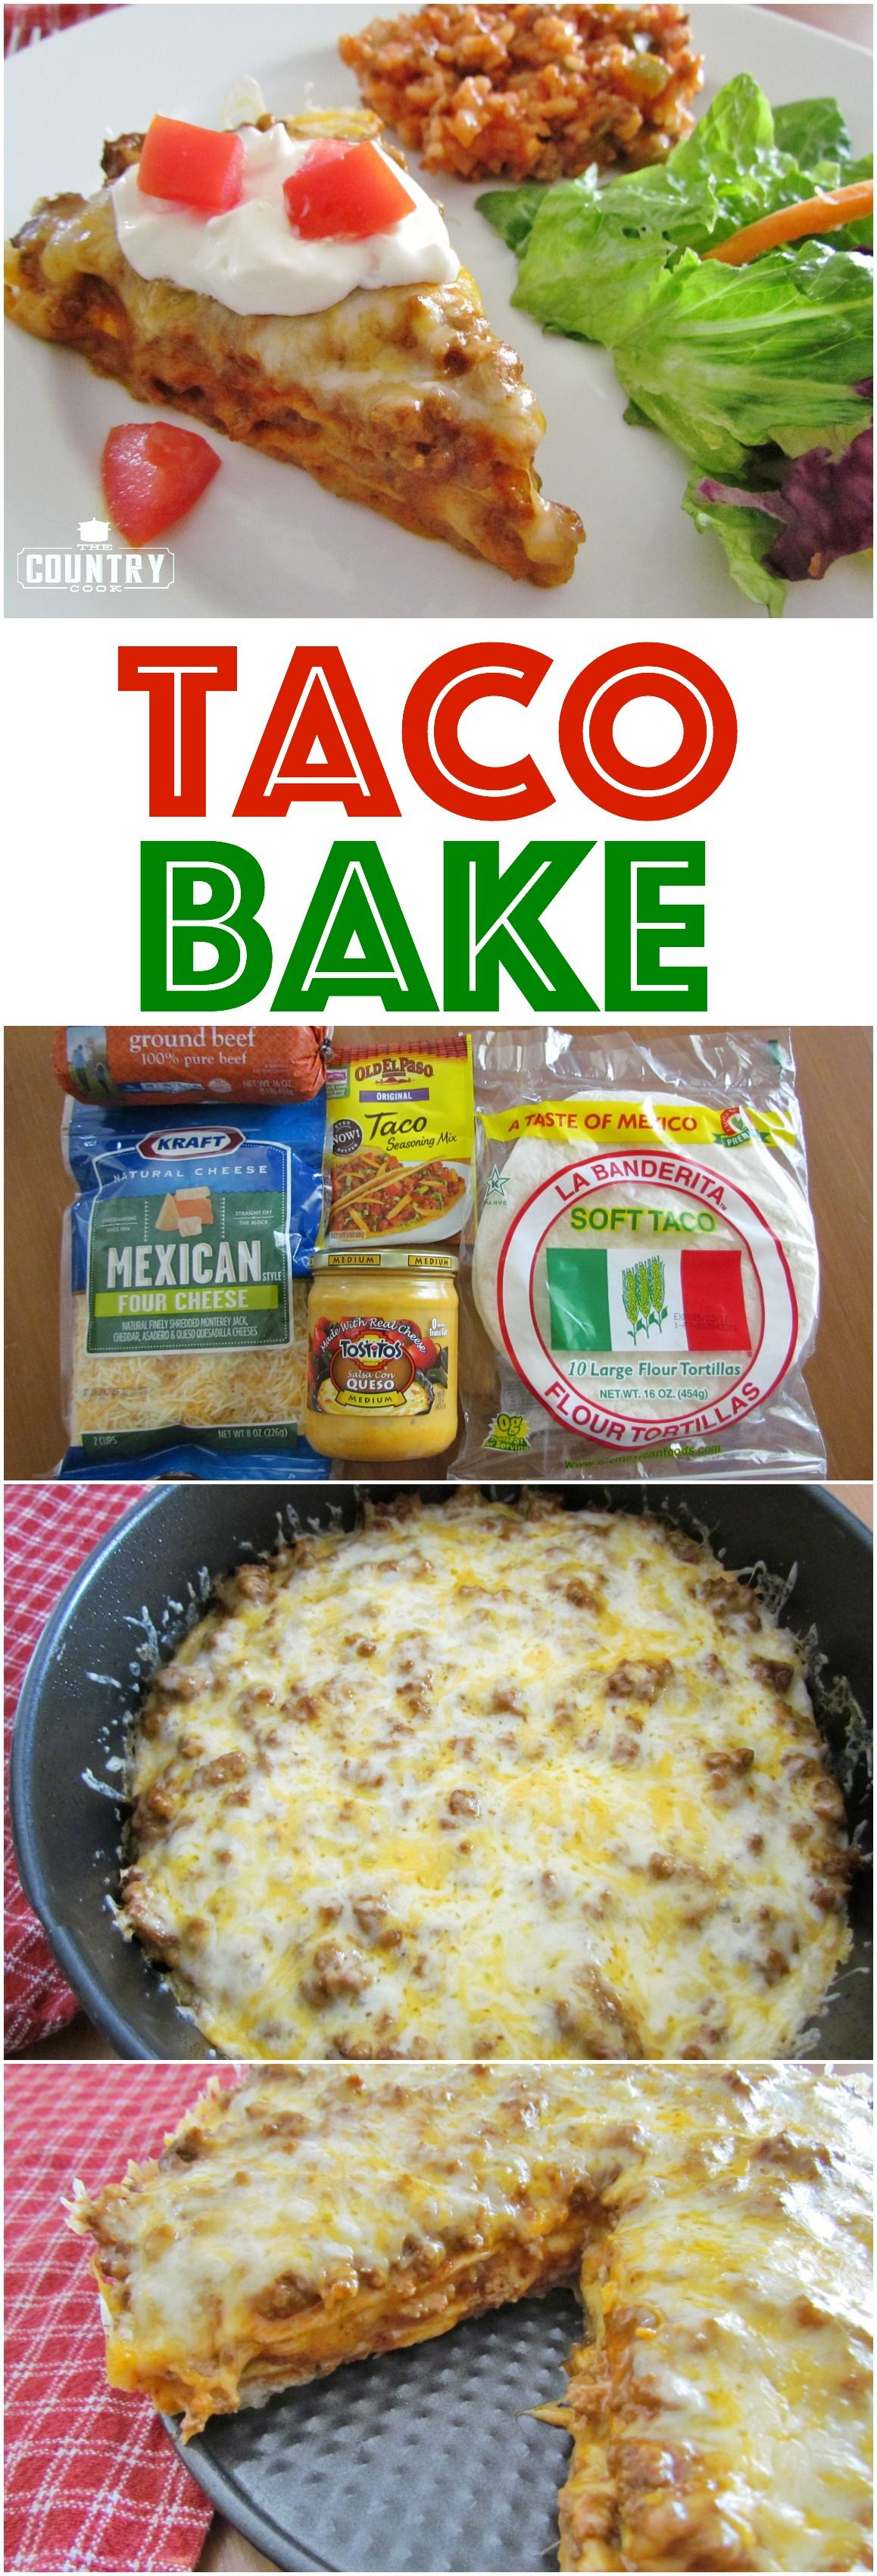 Taco Bake recipe from The Country Cook is so easy and SO yummy! Layers of seasoned ground beef, cheese and tortillas! My family goes nuts for this!